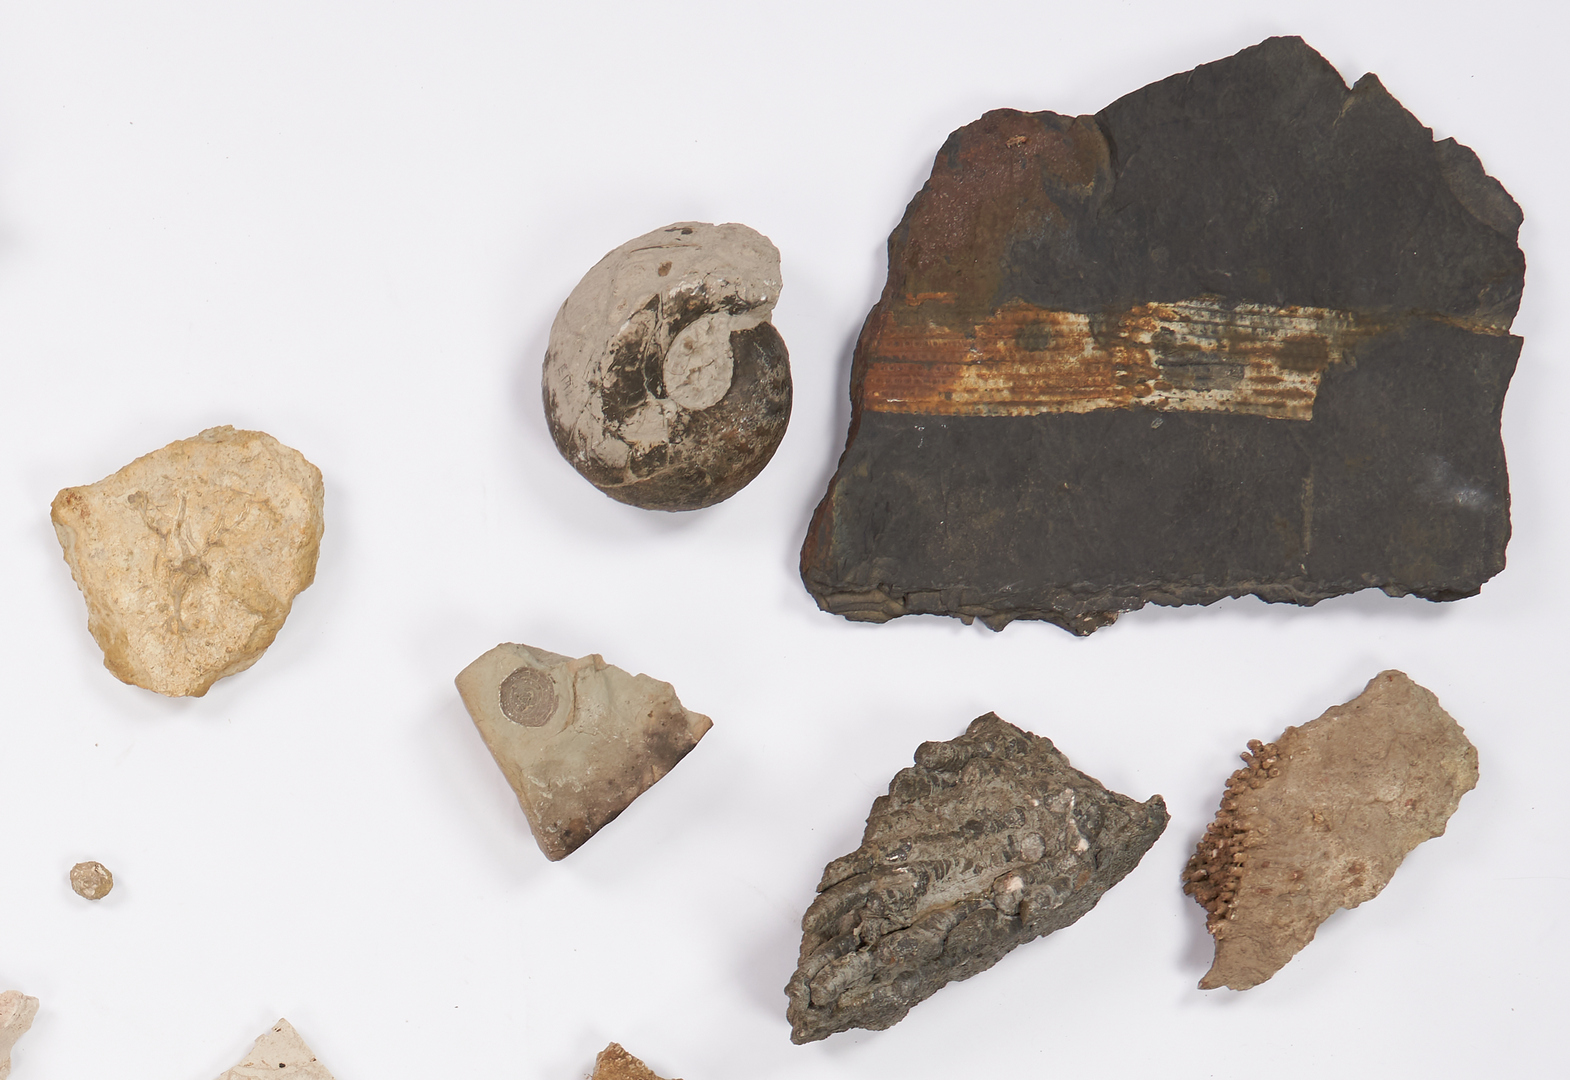 Lot 1164: Fossil & Arrowhead Collection, 100+ items